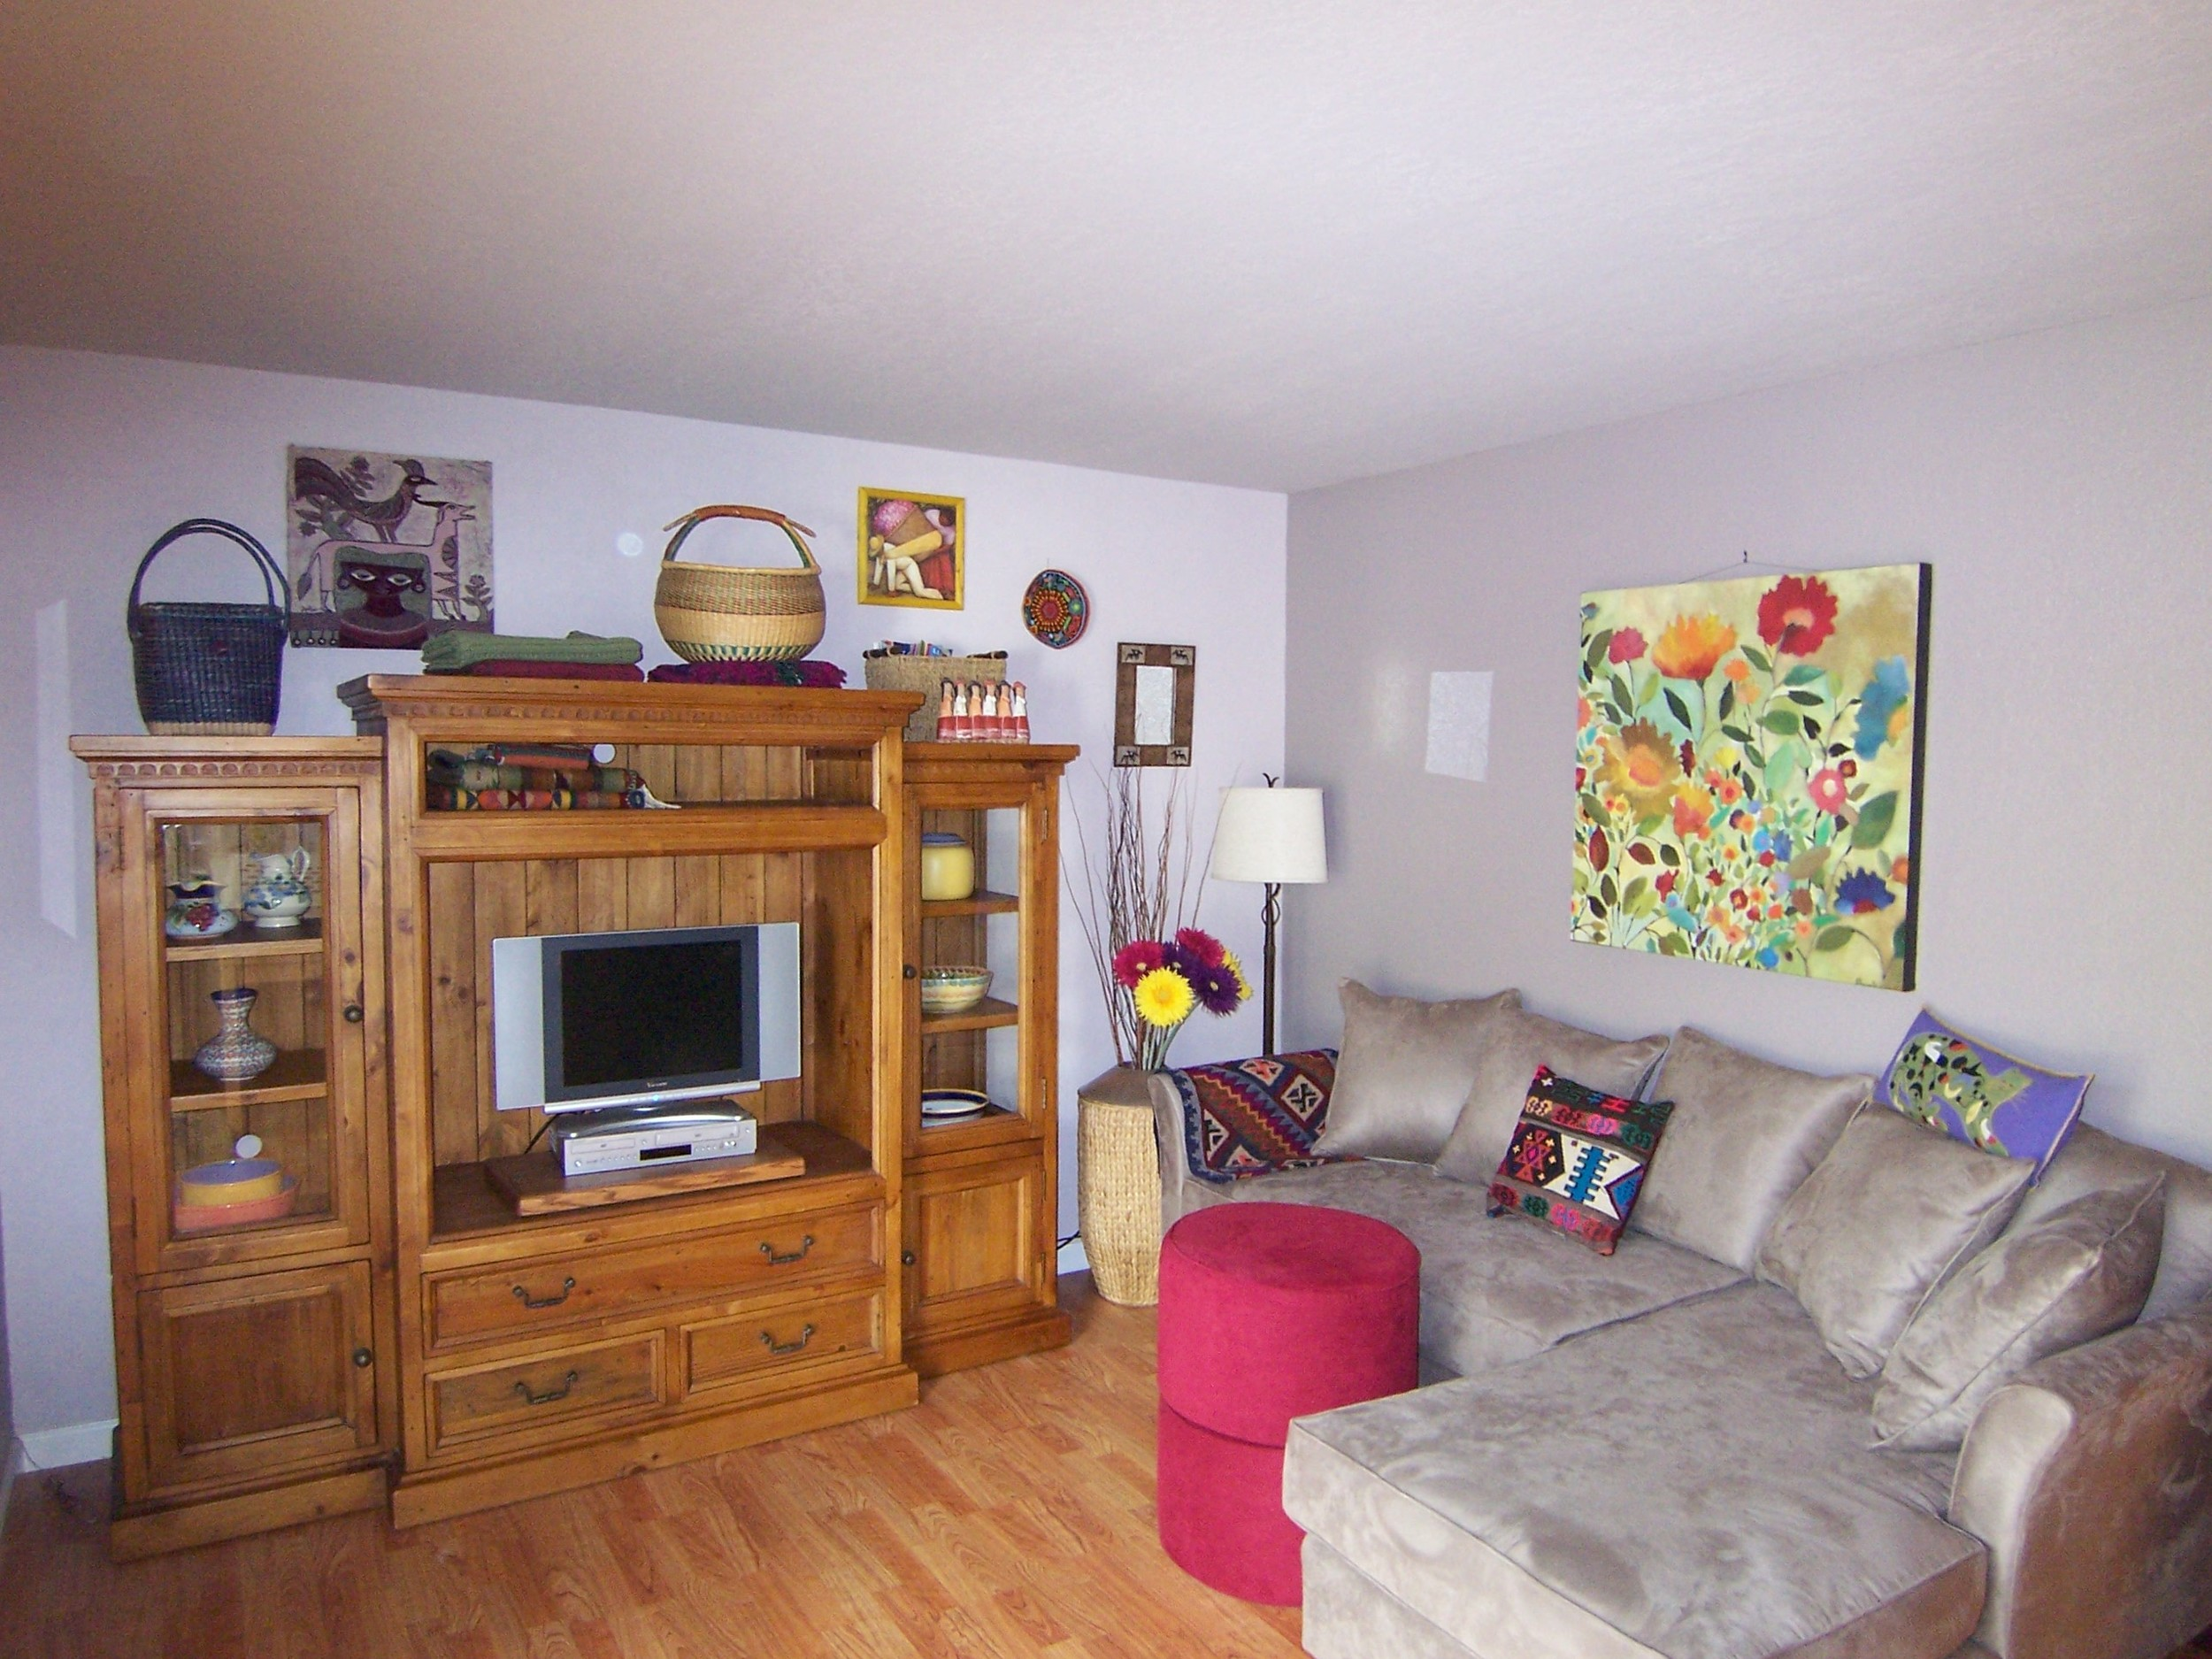 Family+Room+Decor+and+Paint+Color.jpg